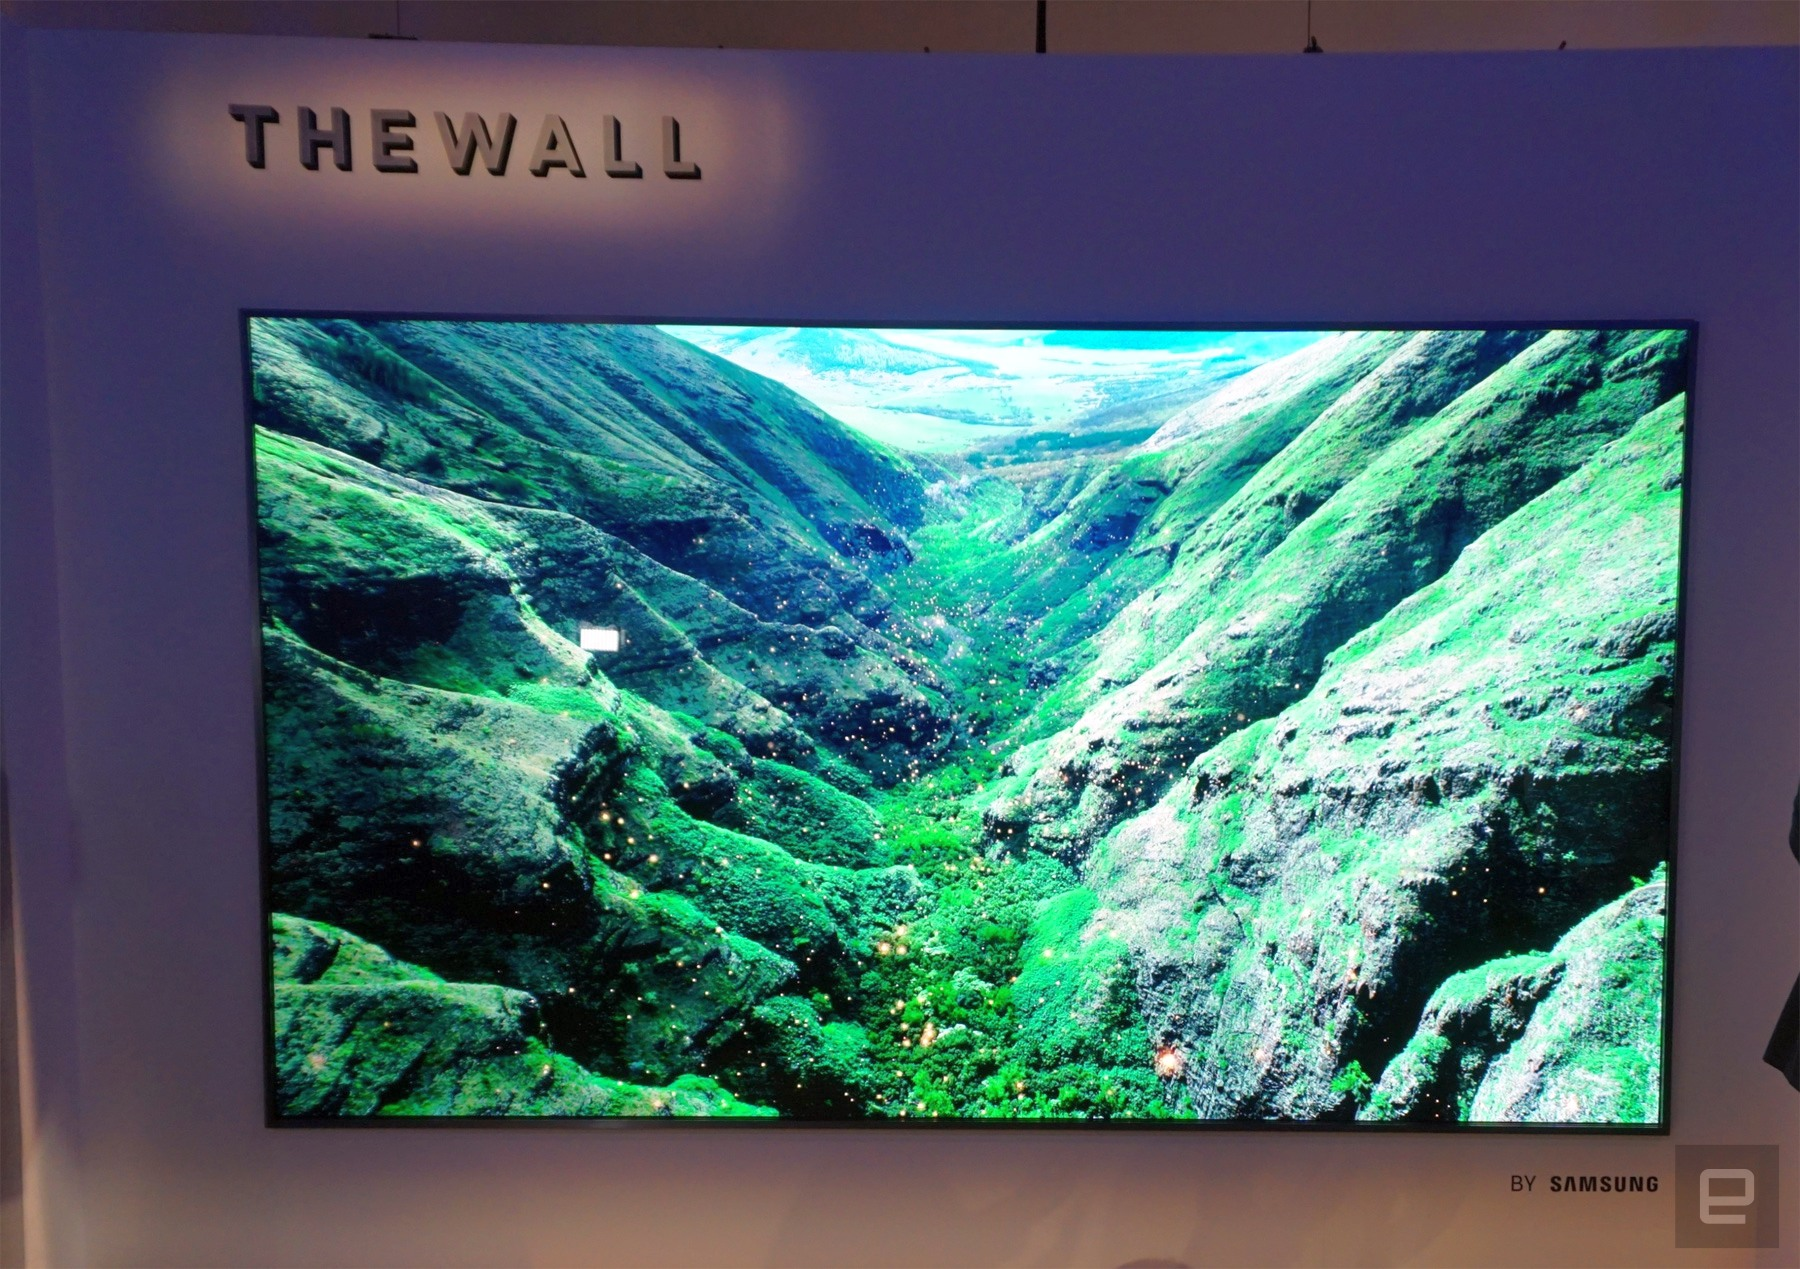 Samsung is ready to build a 146-inch TV wall in your house